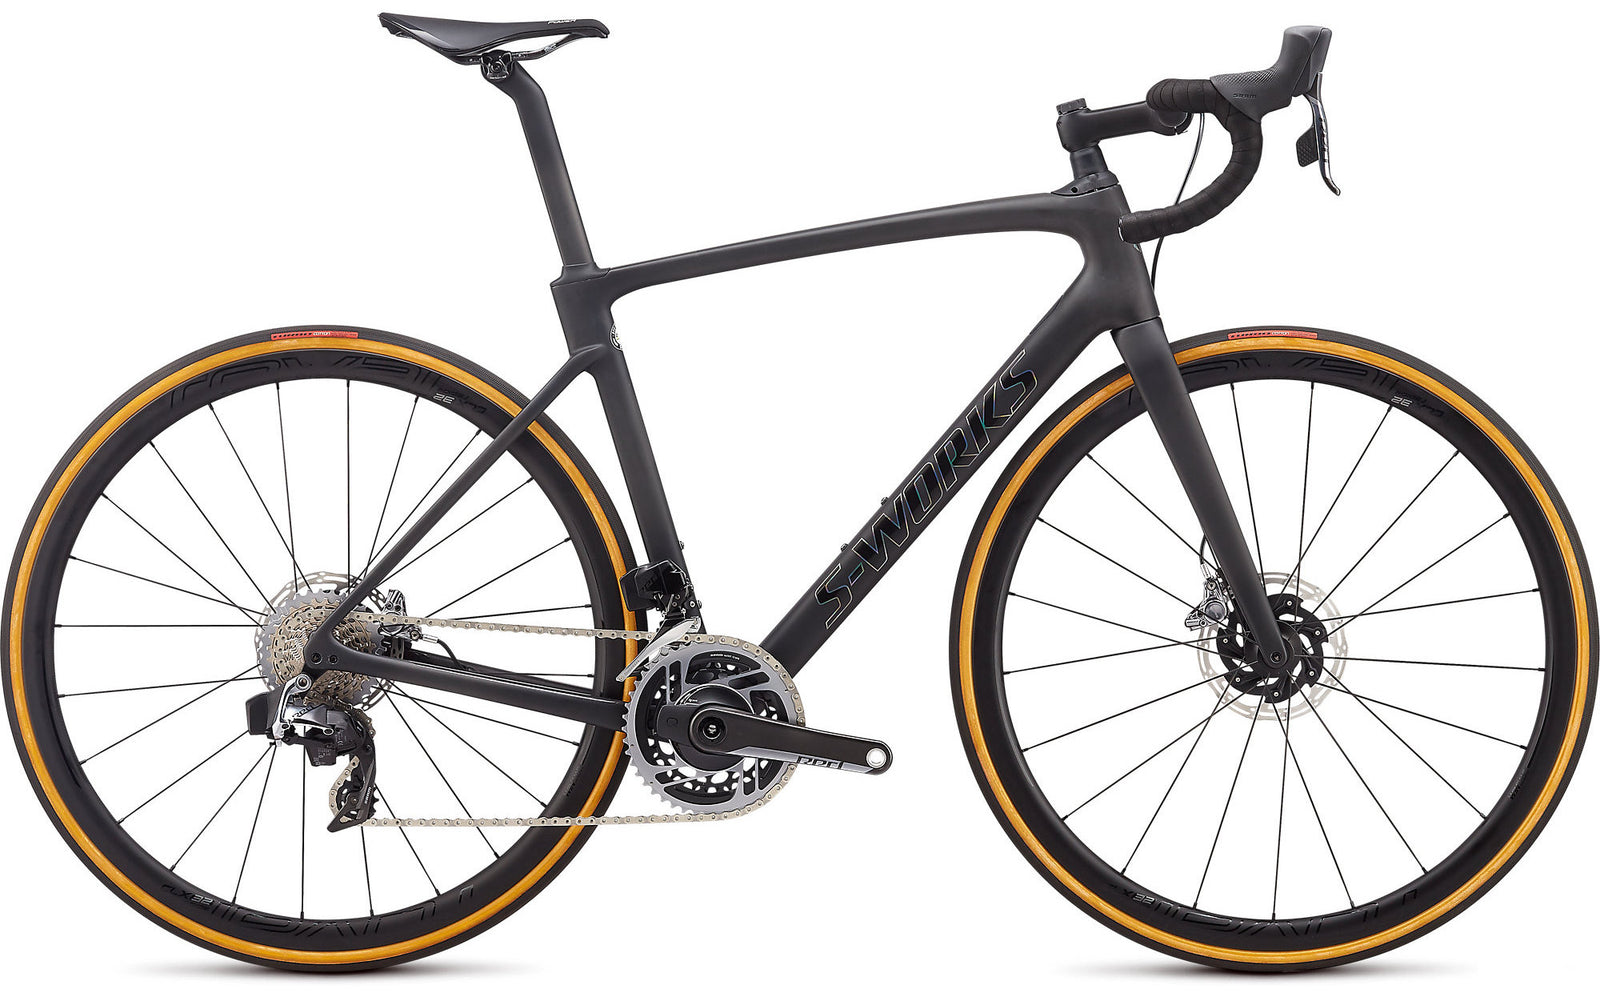 All-New S-Works Roubaix Red eTap AXS